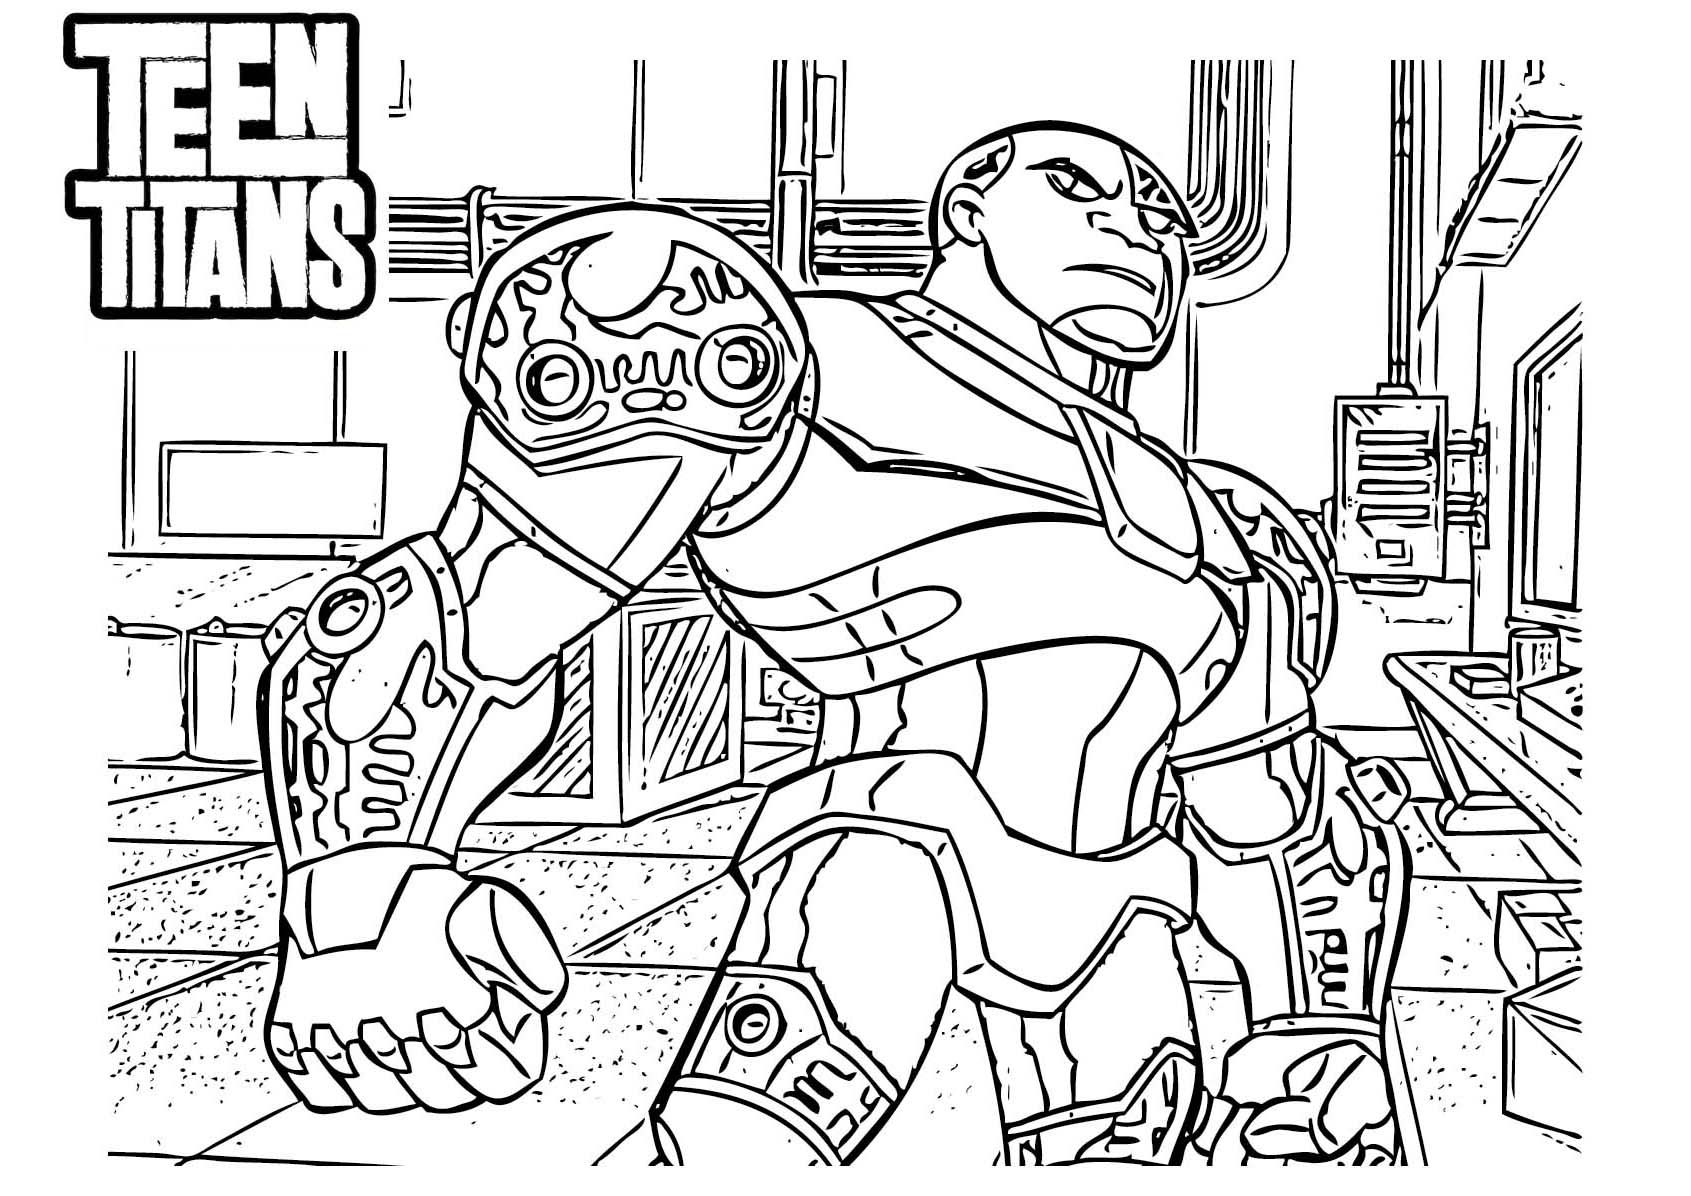 Cyborg-teen-titans-coloring-pages.jpeg (1691×1196) | Coloring 4 Kids ...